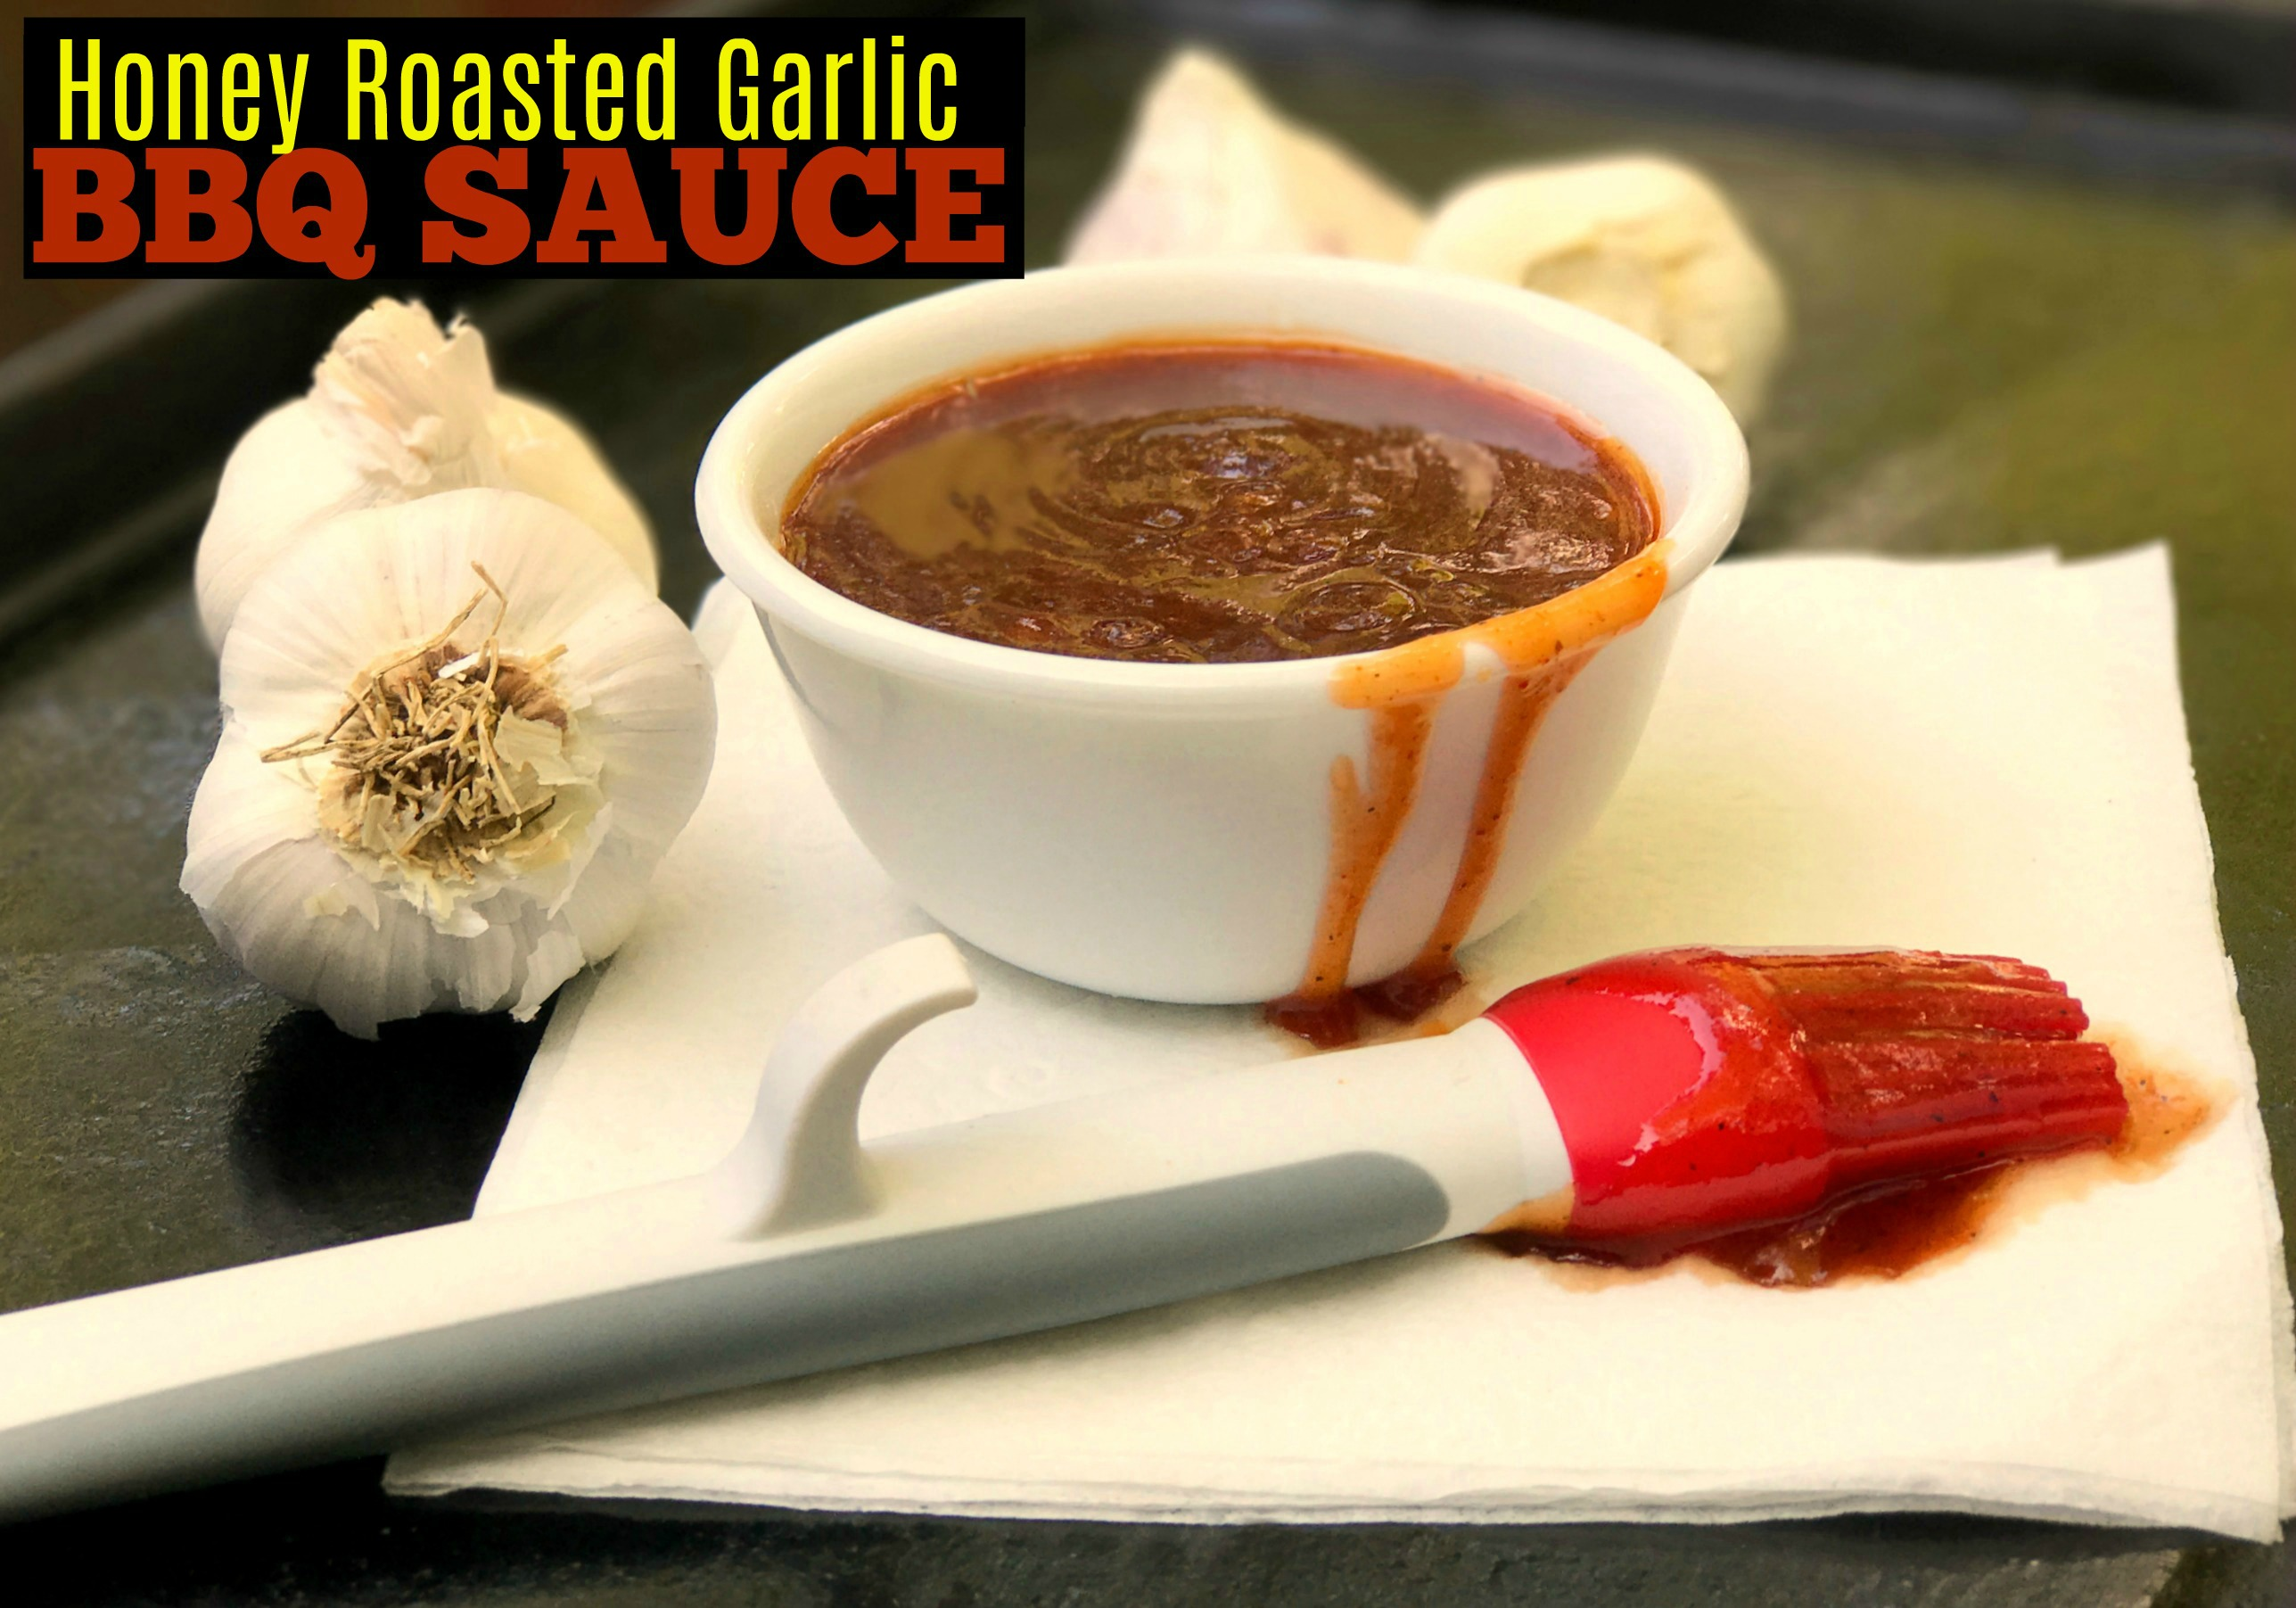 Honey Roasted Garlic BBQ Sauce